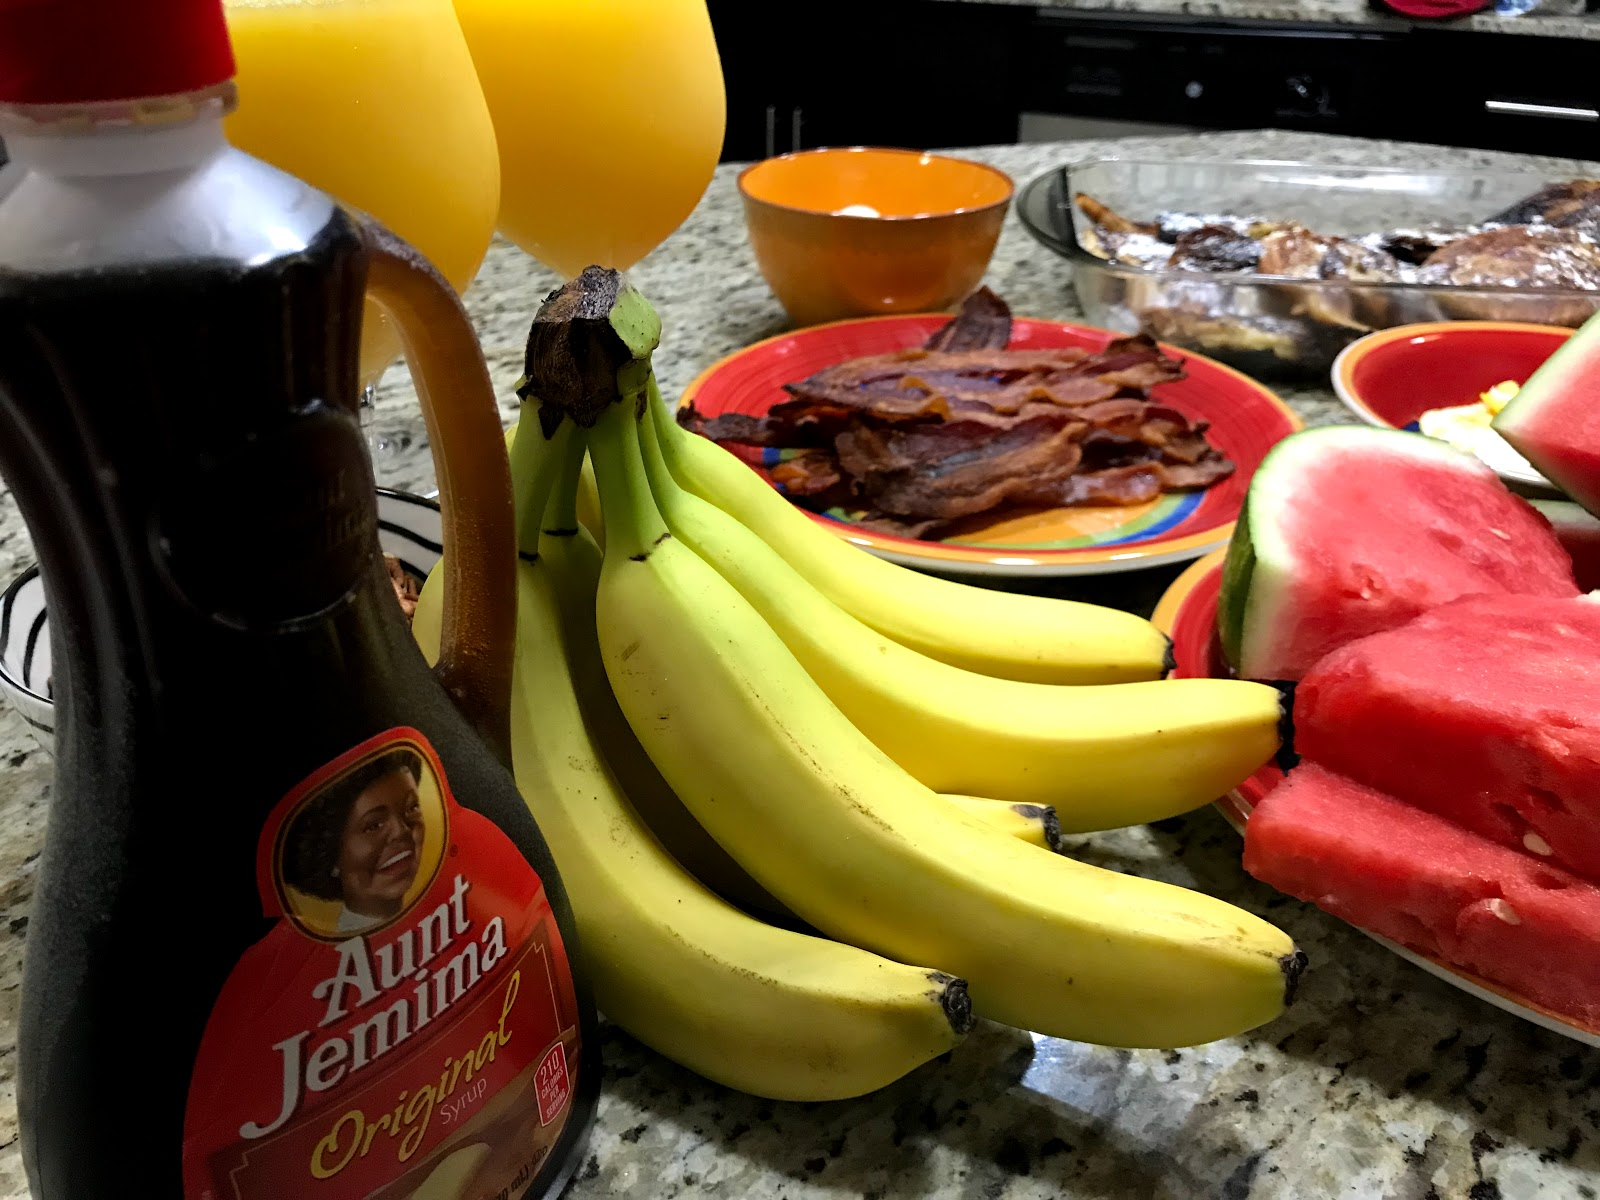 Image: Tangie Bell is sharing her morning breakfast seen first on bits and babbles blog. Sharing motivational morning with real weekend feelings. Making french toast recipe